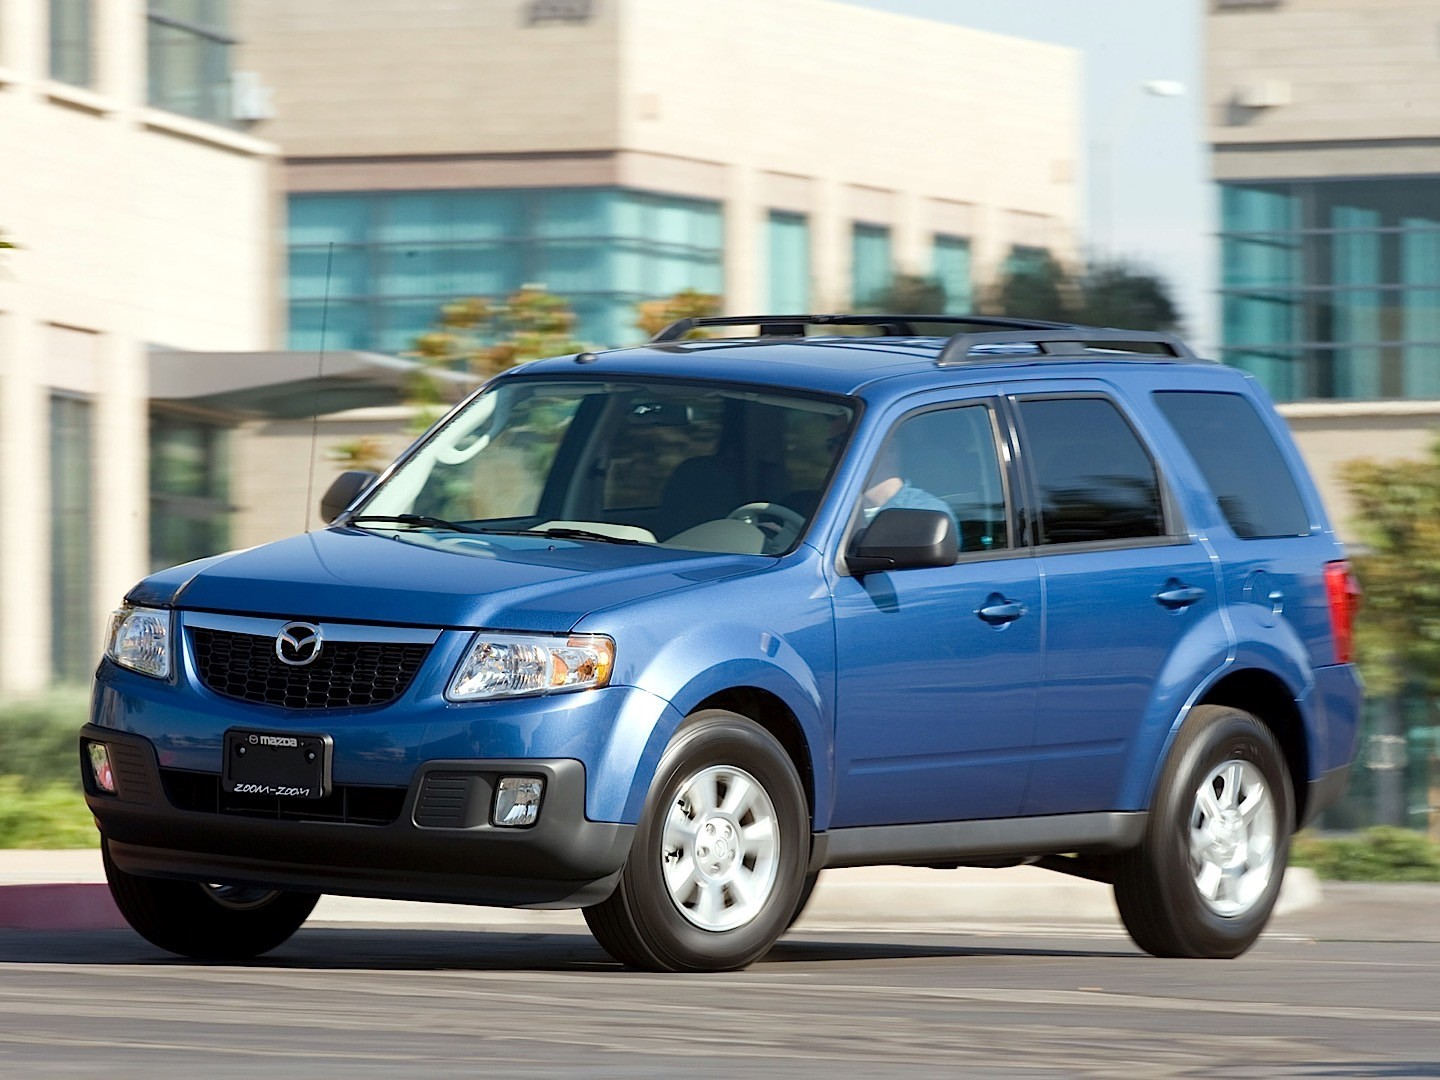 100 mazda tribute 2012 mazda speed 3 view of mazda tribute i sport photos video features. Black Bedroom Furniture Sets. Home Design Ideas